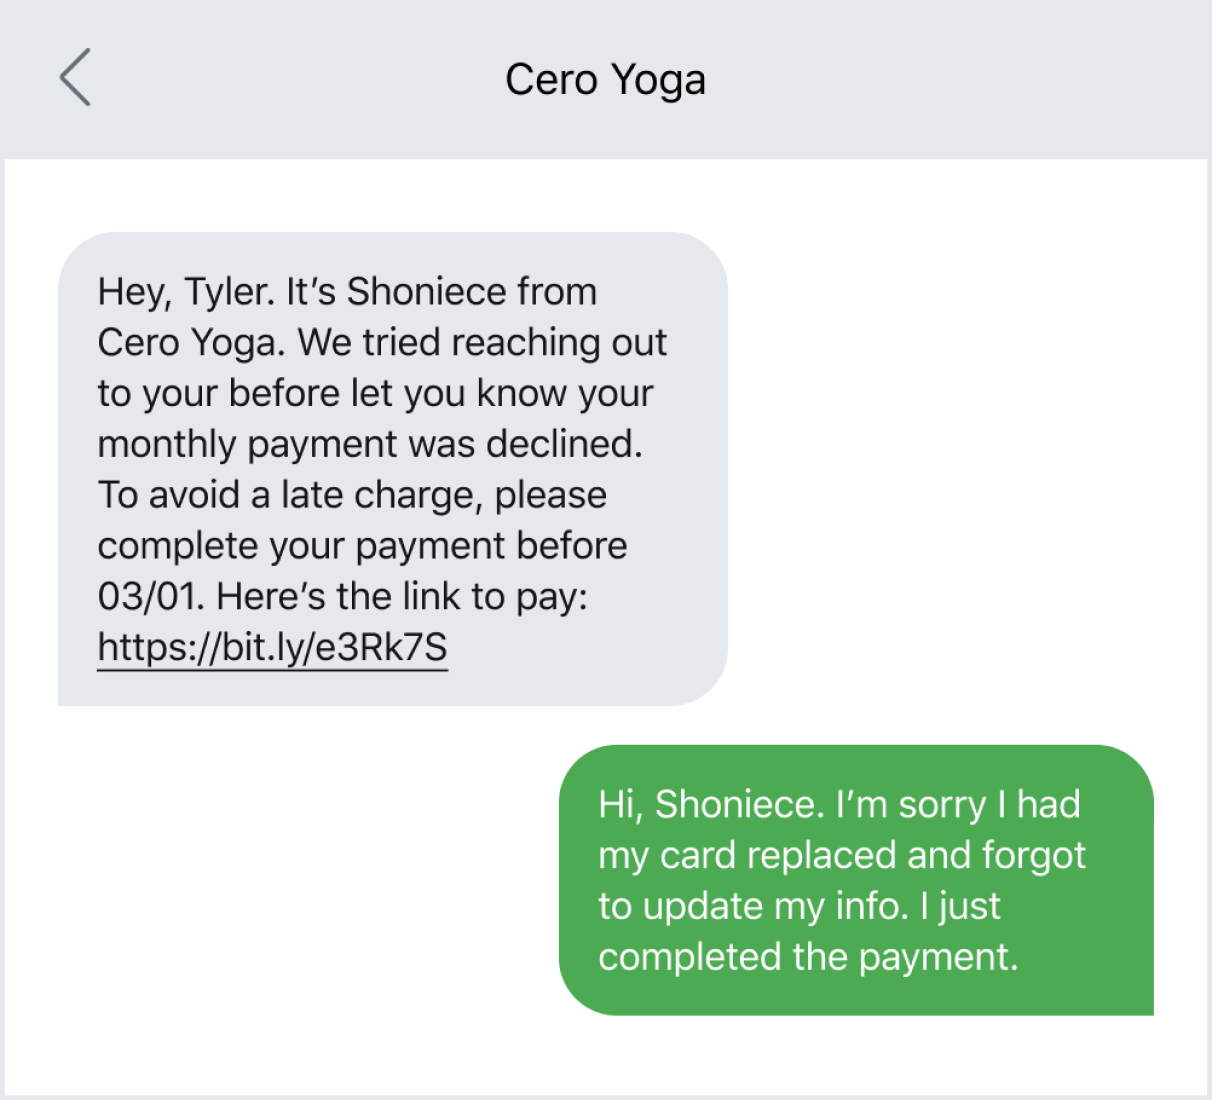 Example of sending a reminder text with a link to a payment page